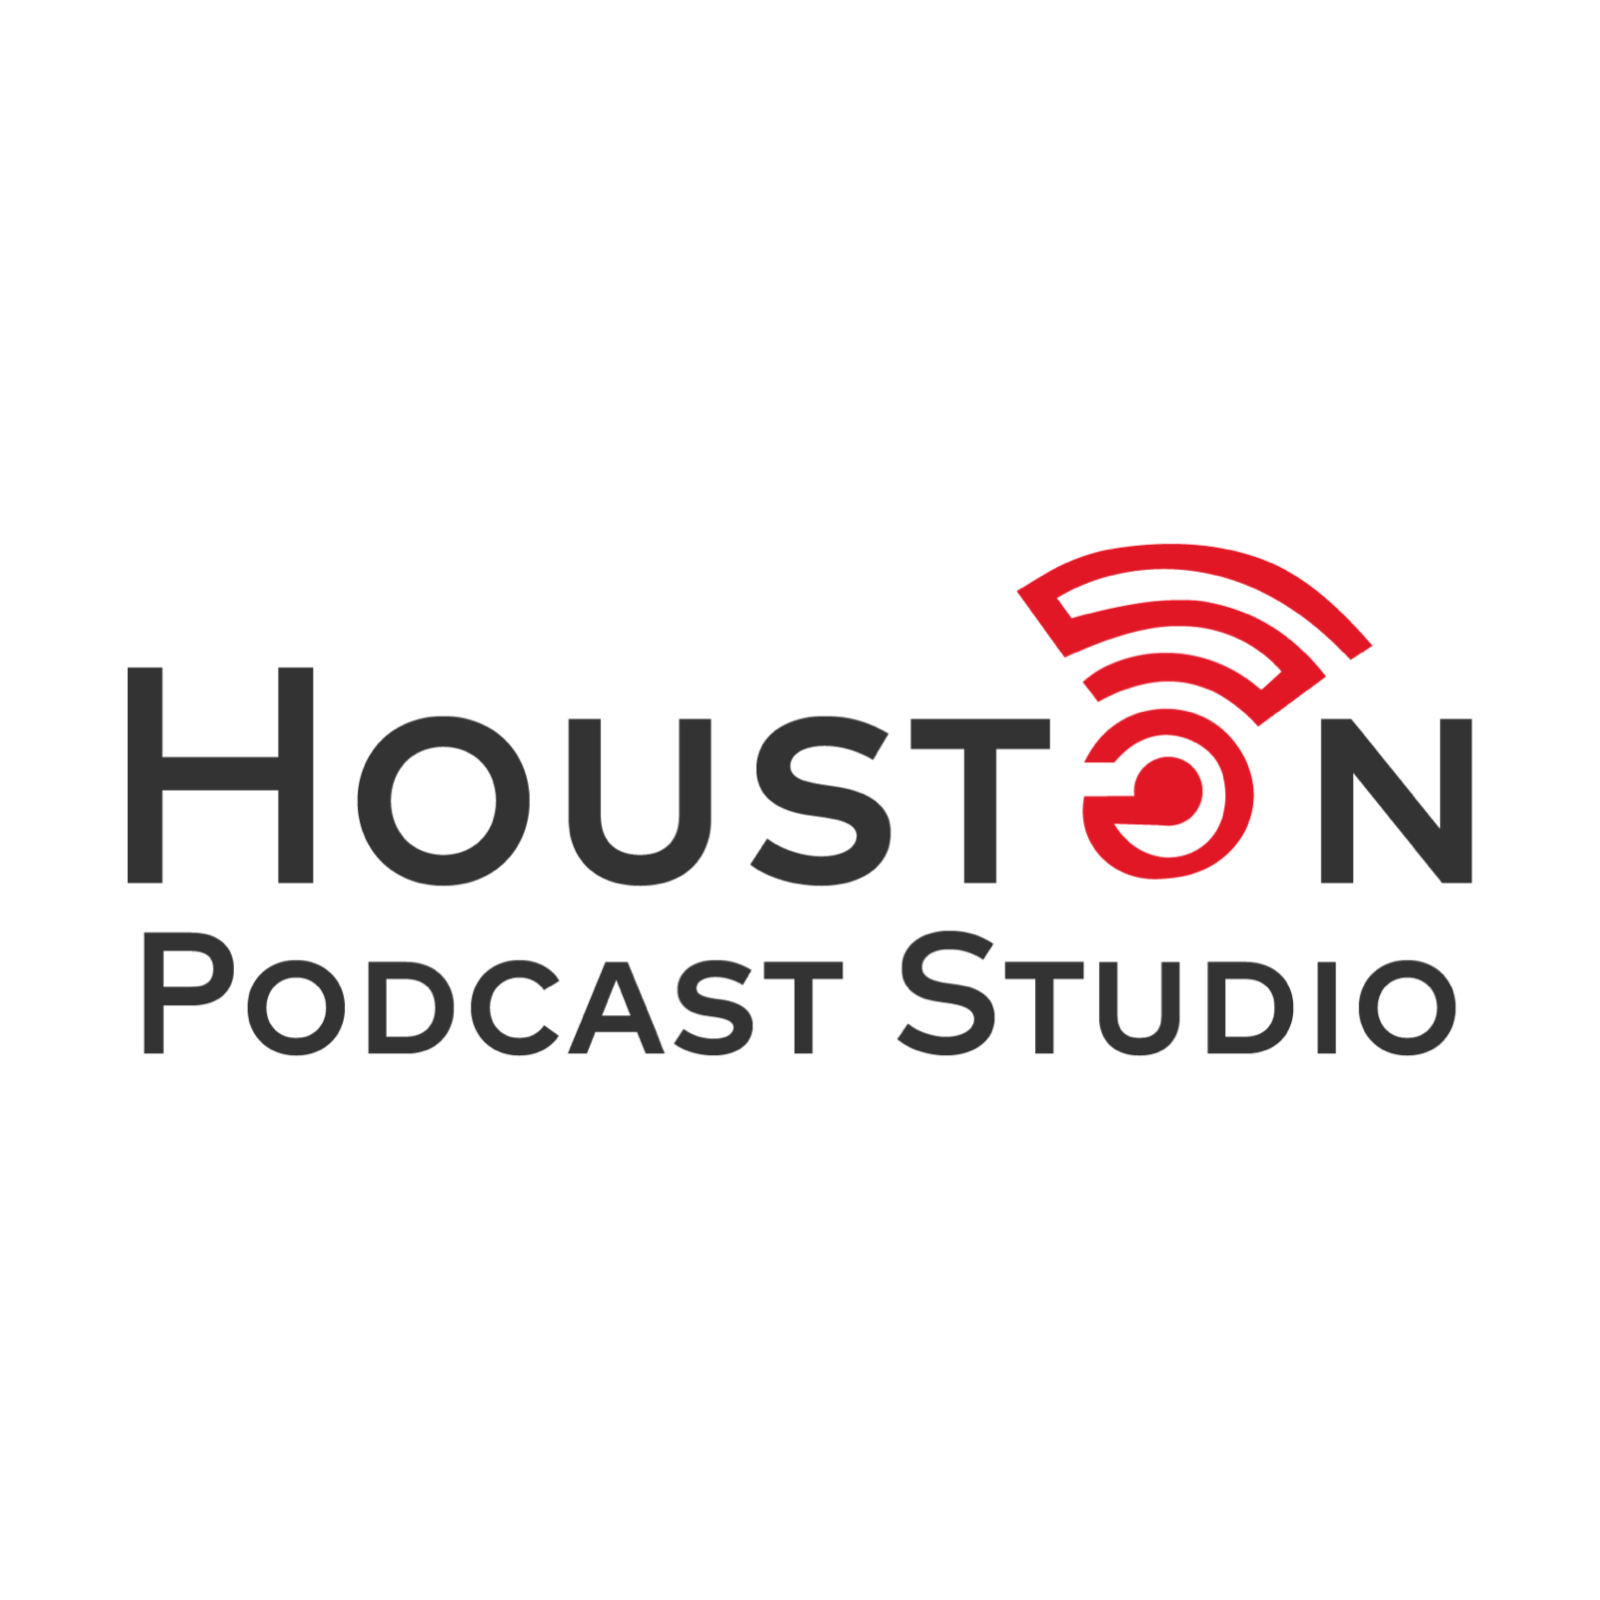 Houston Podcast Studio